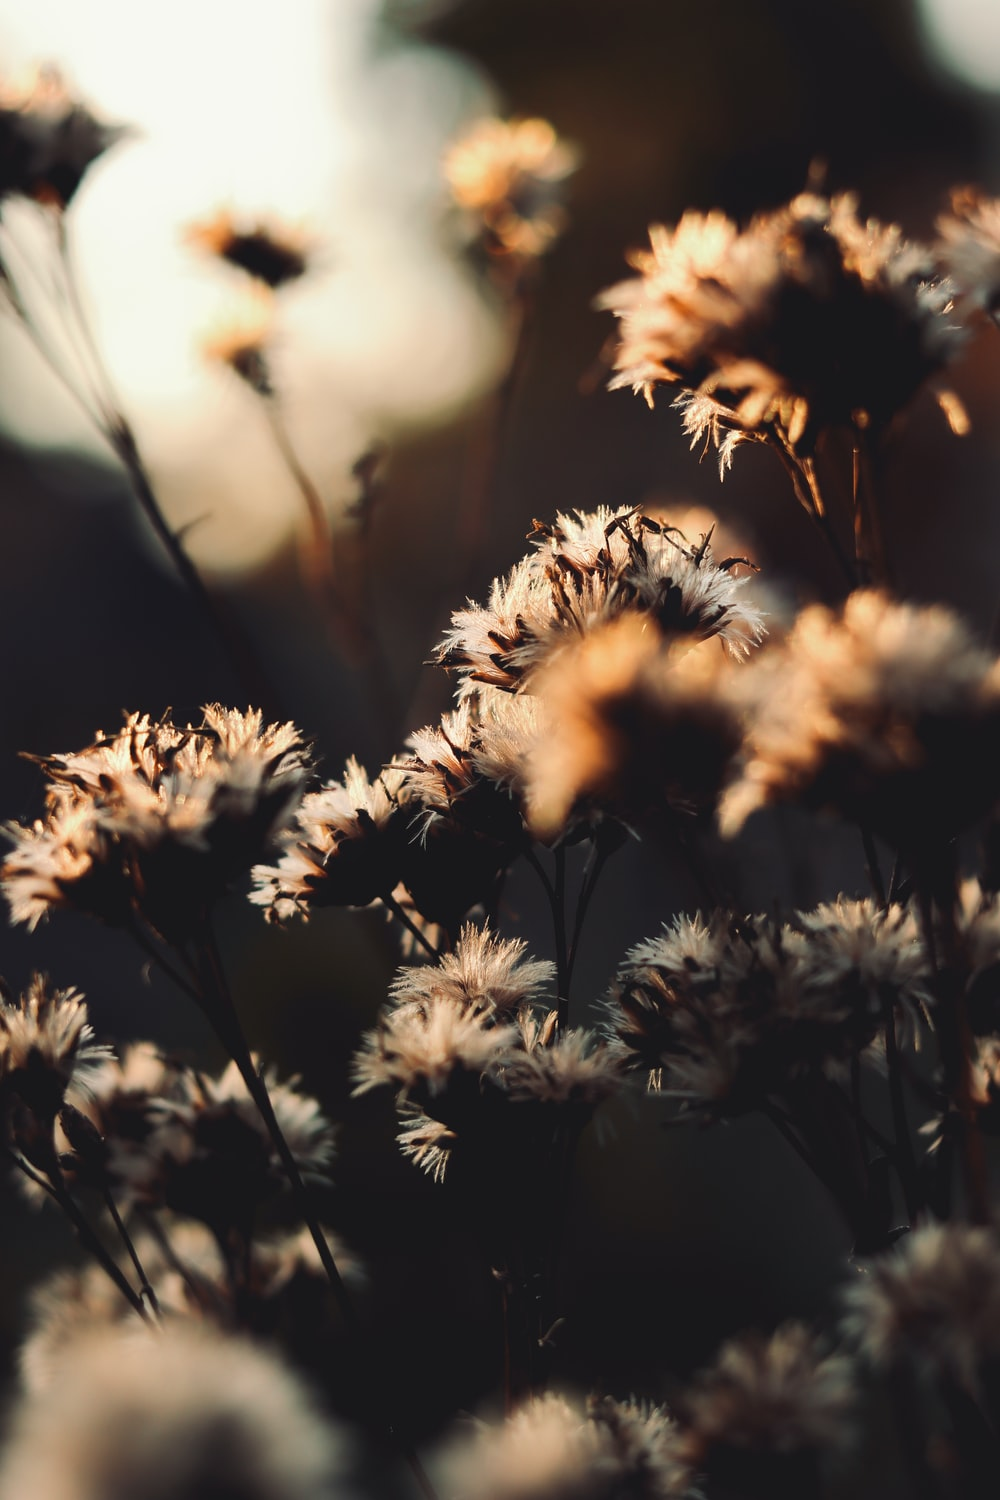 grayscale photo of flowers during daytime